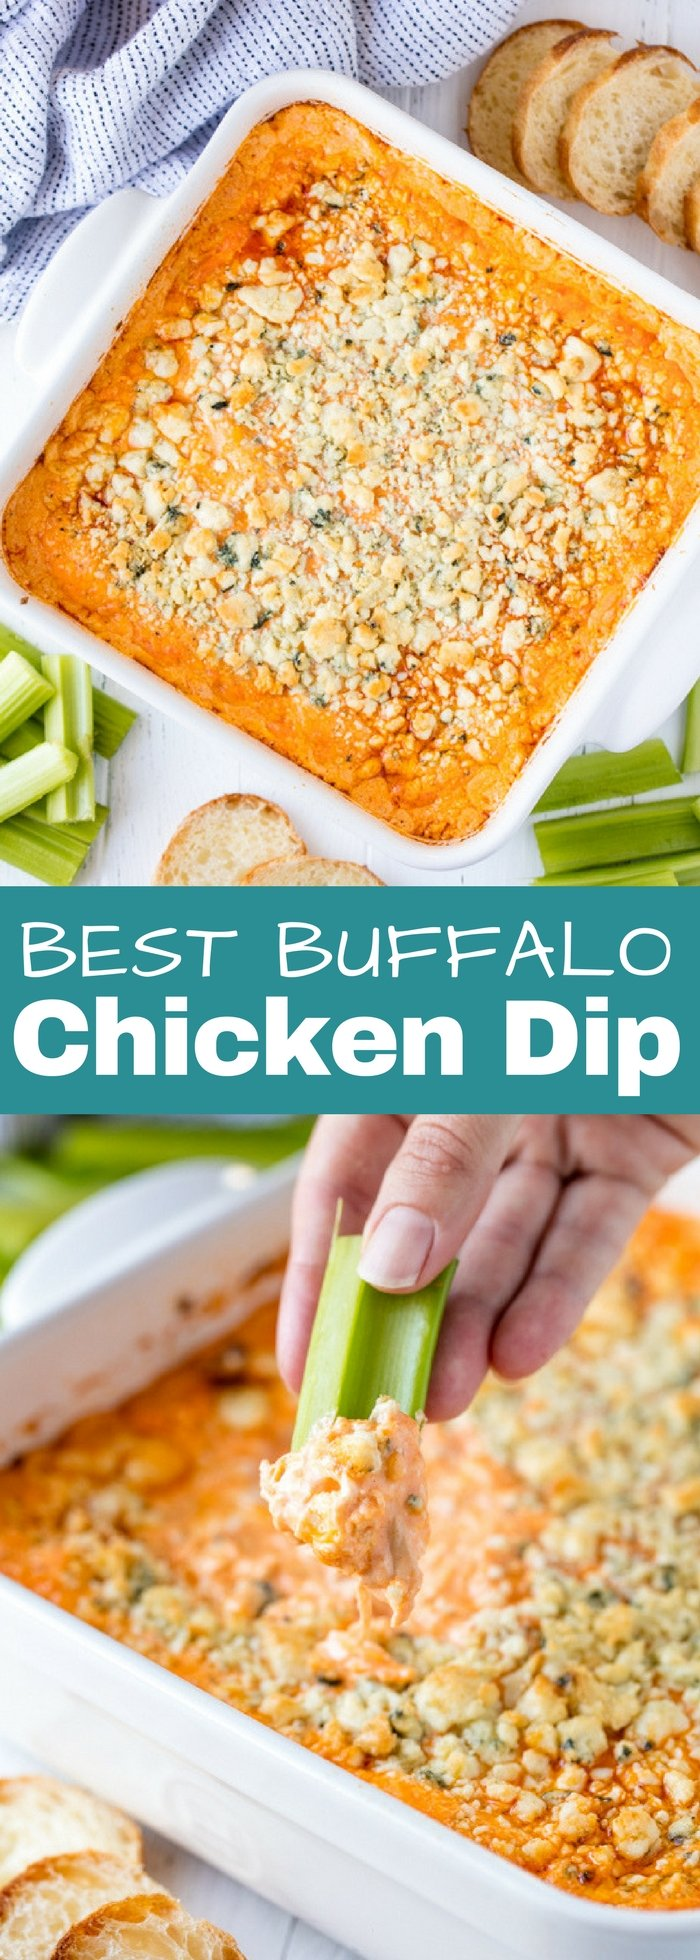 There's a reason why everyone loves Buffalo Chicken Dip! This spicy party food appetizer is full of classic buffalo wing flavors. Use Frank's Red Hot for the best buffalo chicken dip recipe ever!